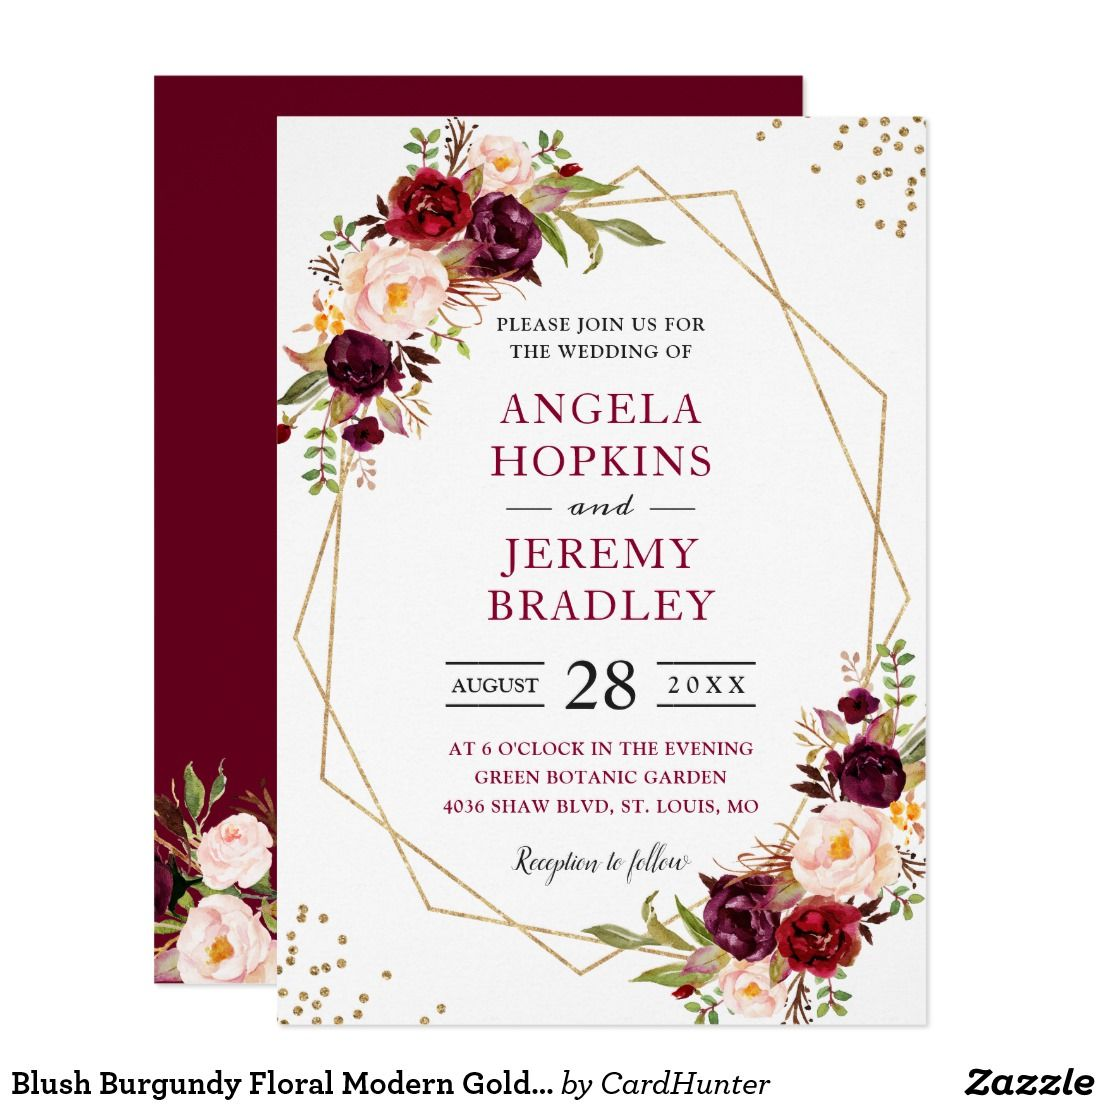 Blush Burgundy Floral Modern Gold Frame Wedding Invitation Bridal